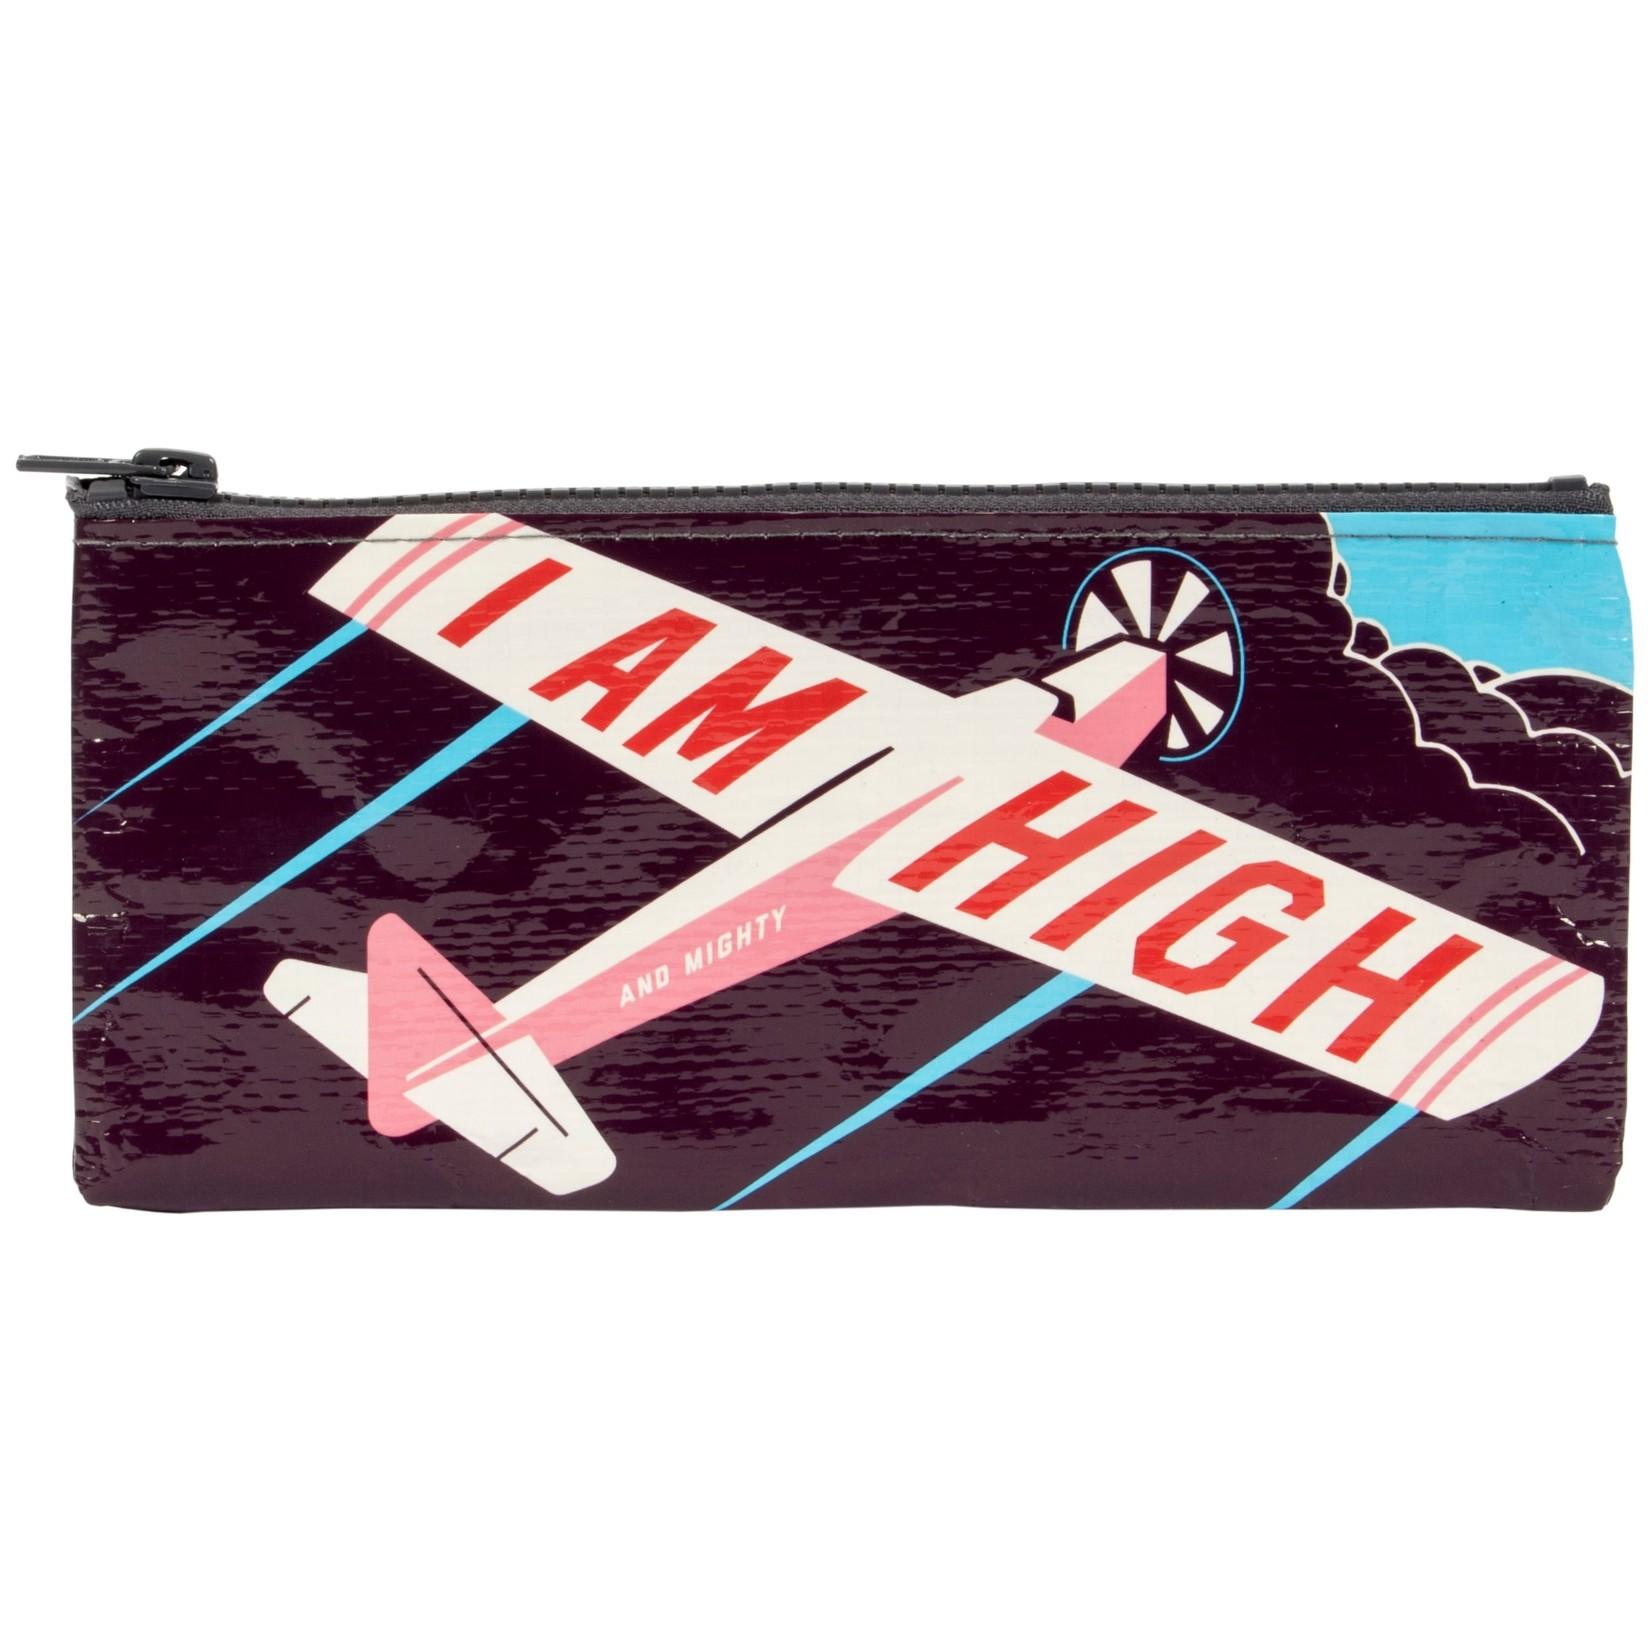 Blue Q I Am High And Mighty Pencil Case